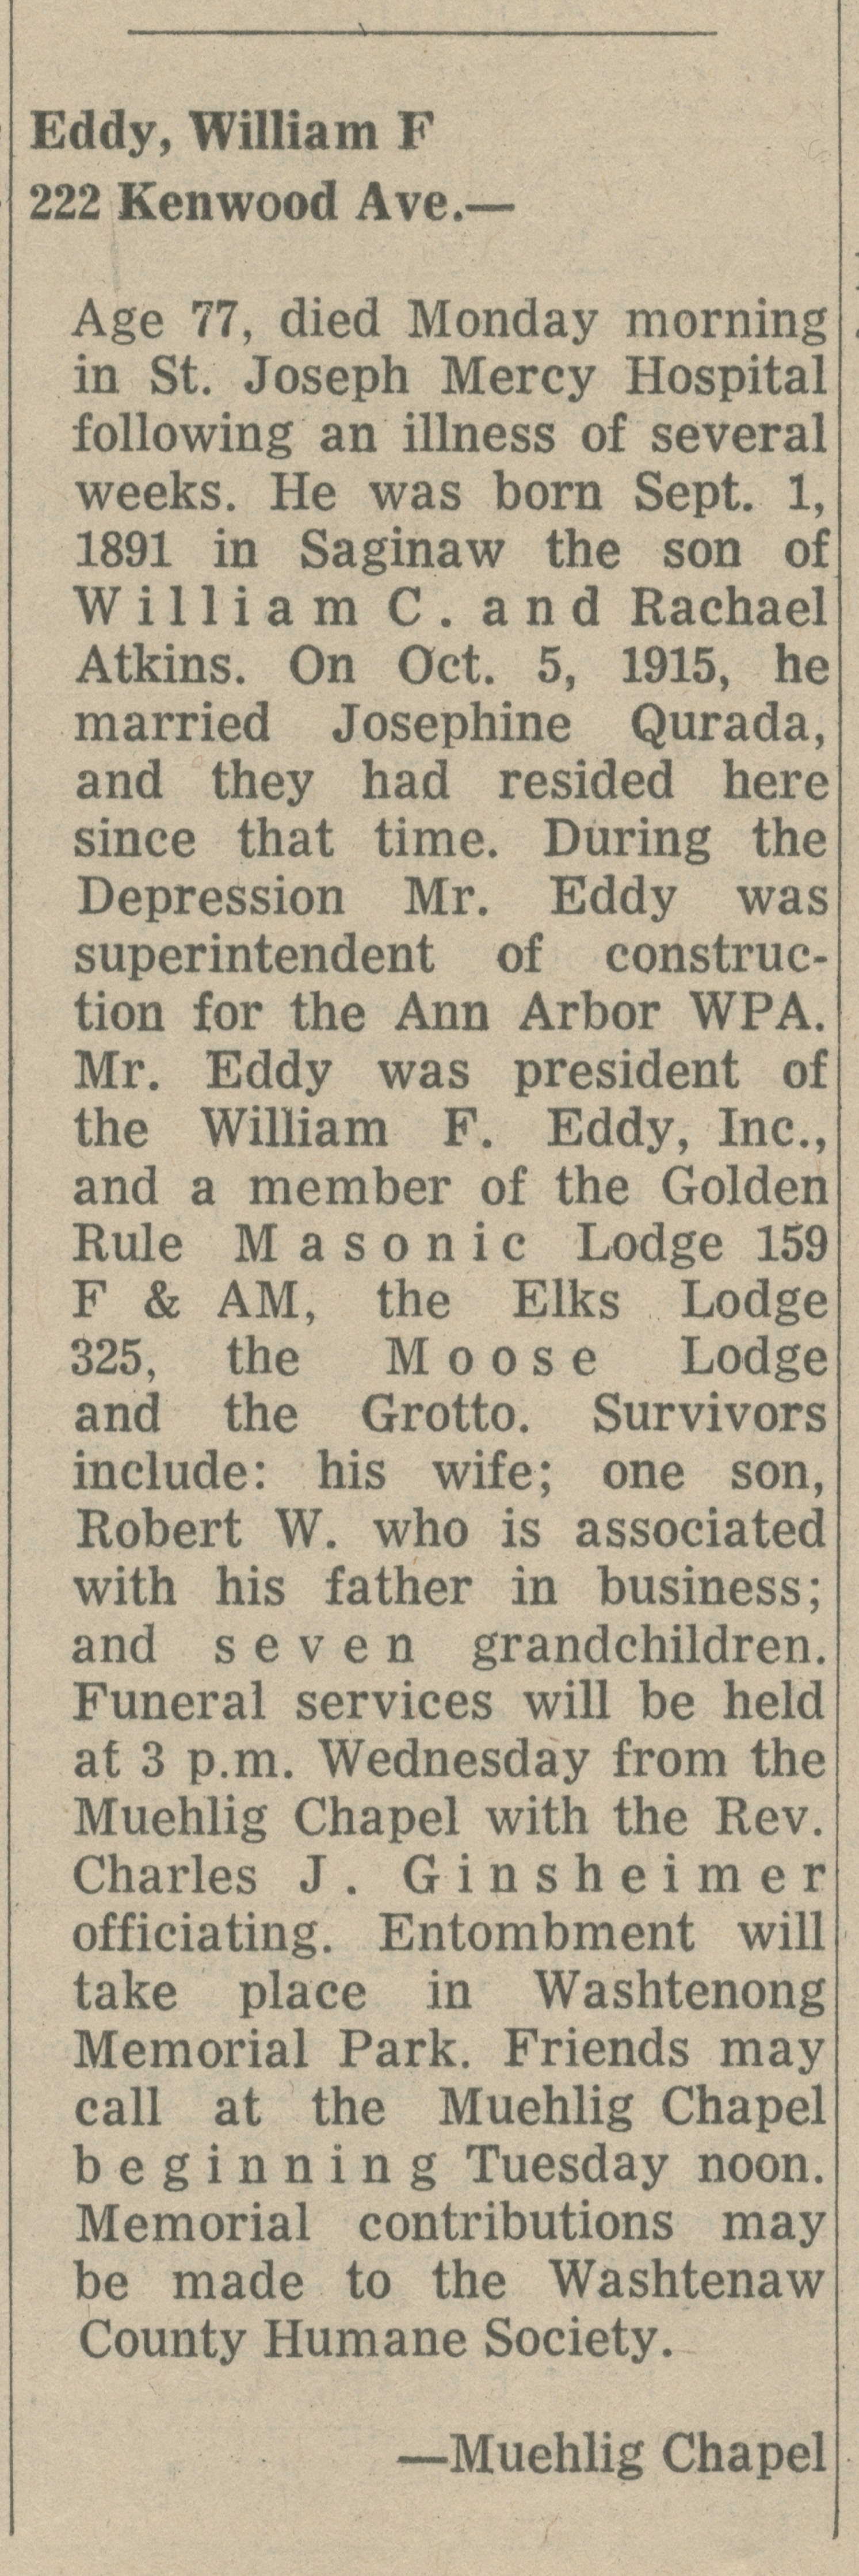 Eddy, William F. image